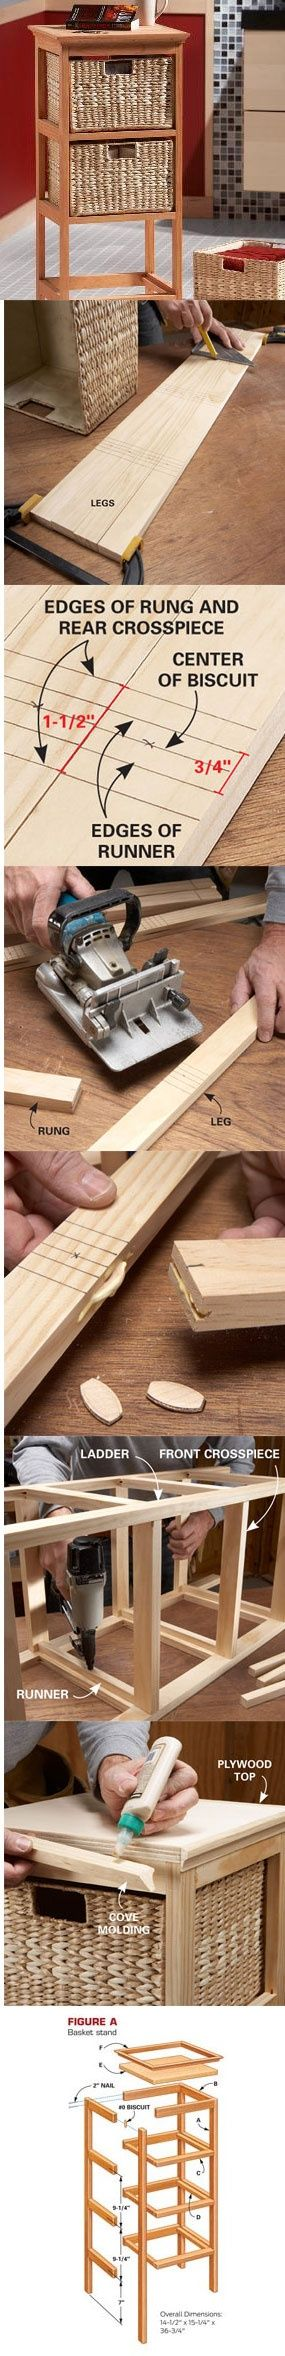 The secret to this handsome, durable basket stand is a biscuit joiner, which creates super-tough joints without metal fasteners or exposed wood dowels. Learn how to build this amazingly versatile storage stand at http://www.familyhandyman.com/DIY-Projects/Woodworking/Woodworking-Projects/how-to-build-a-basket-stand: